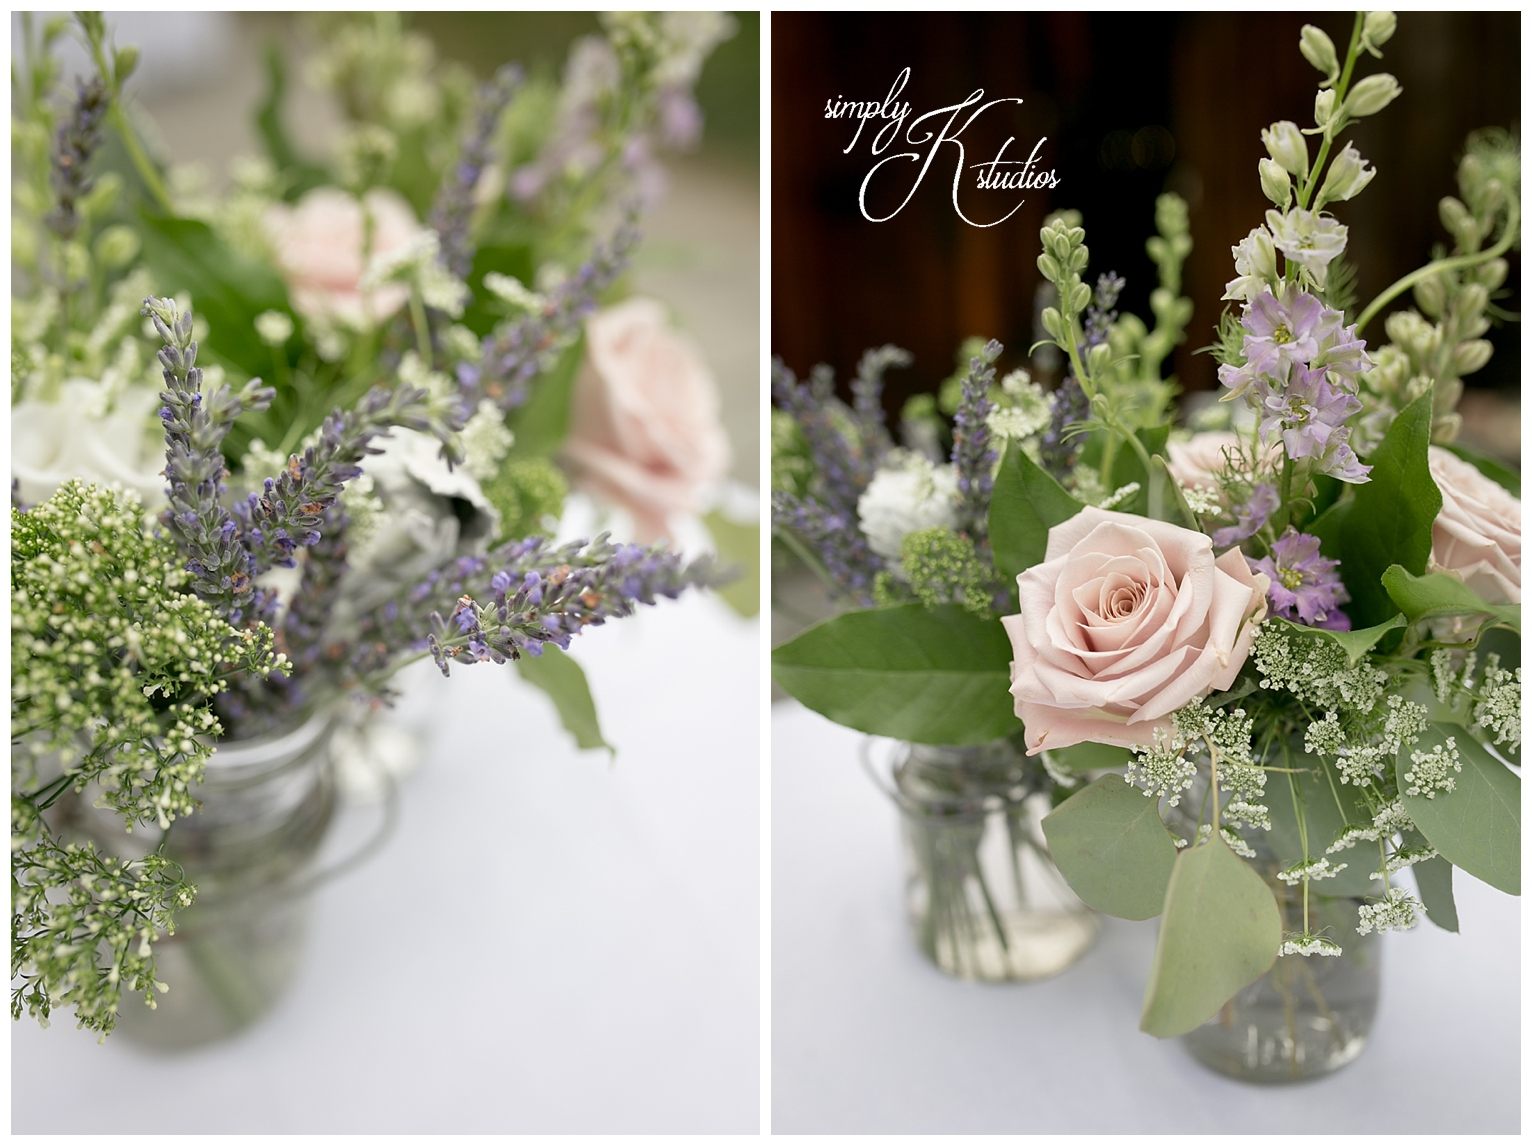 Wedding Flowers in Wethersfield CT.jpg